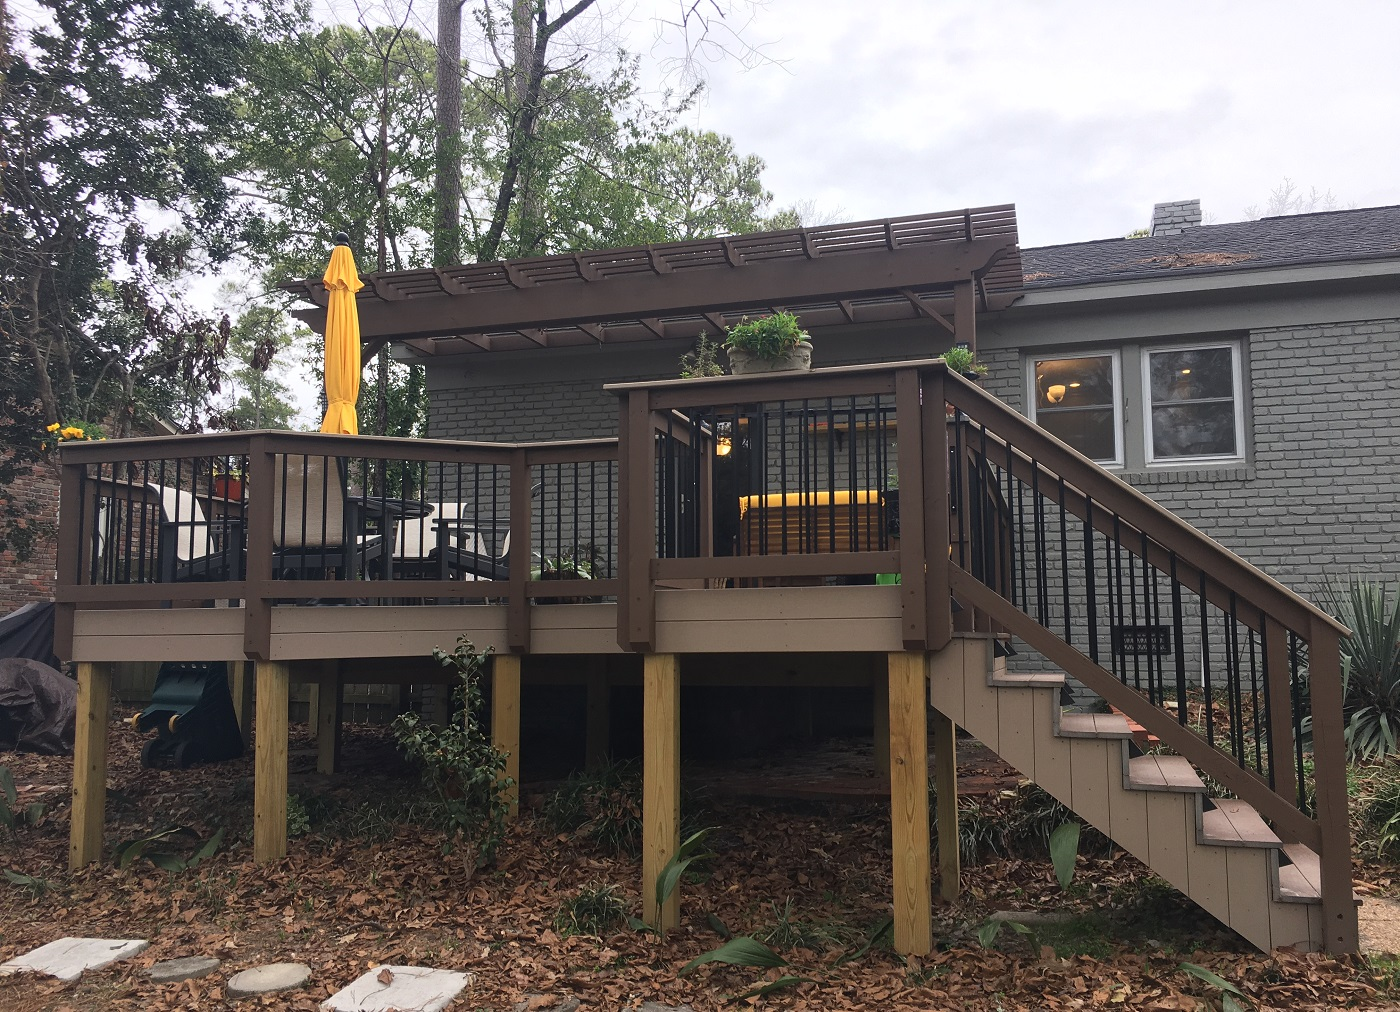 New-TimberTech-deck-addition-in-Columbia-SC-by-Archadeck